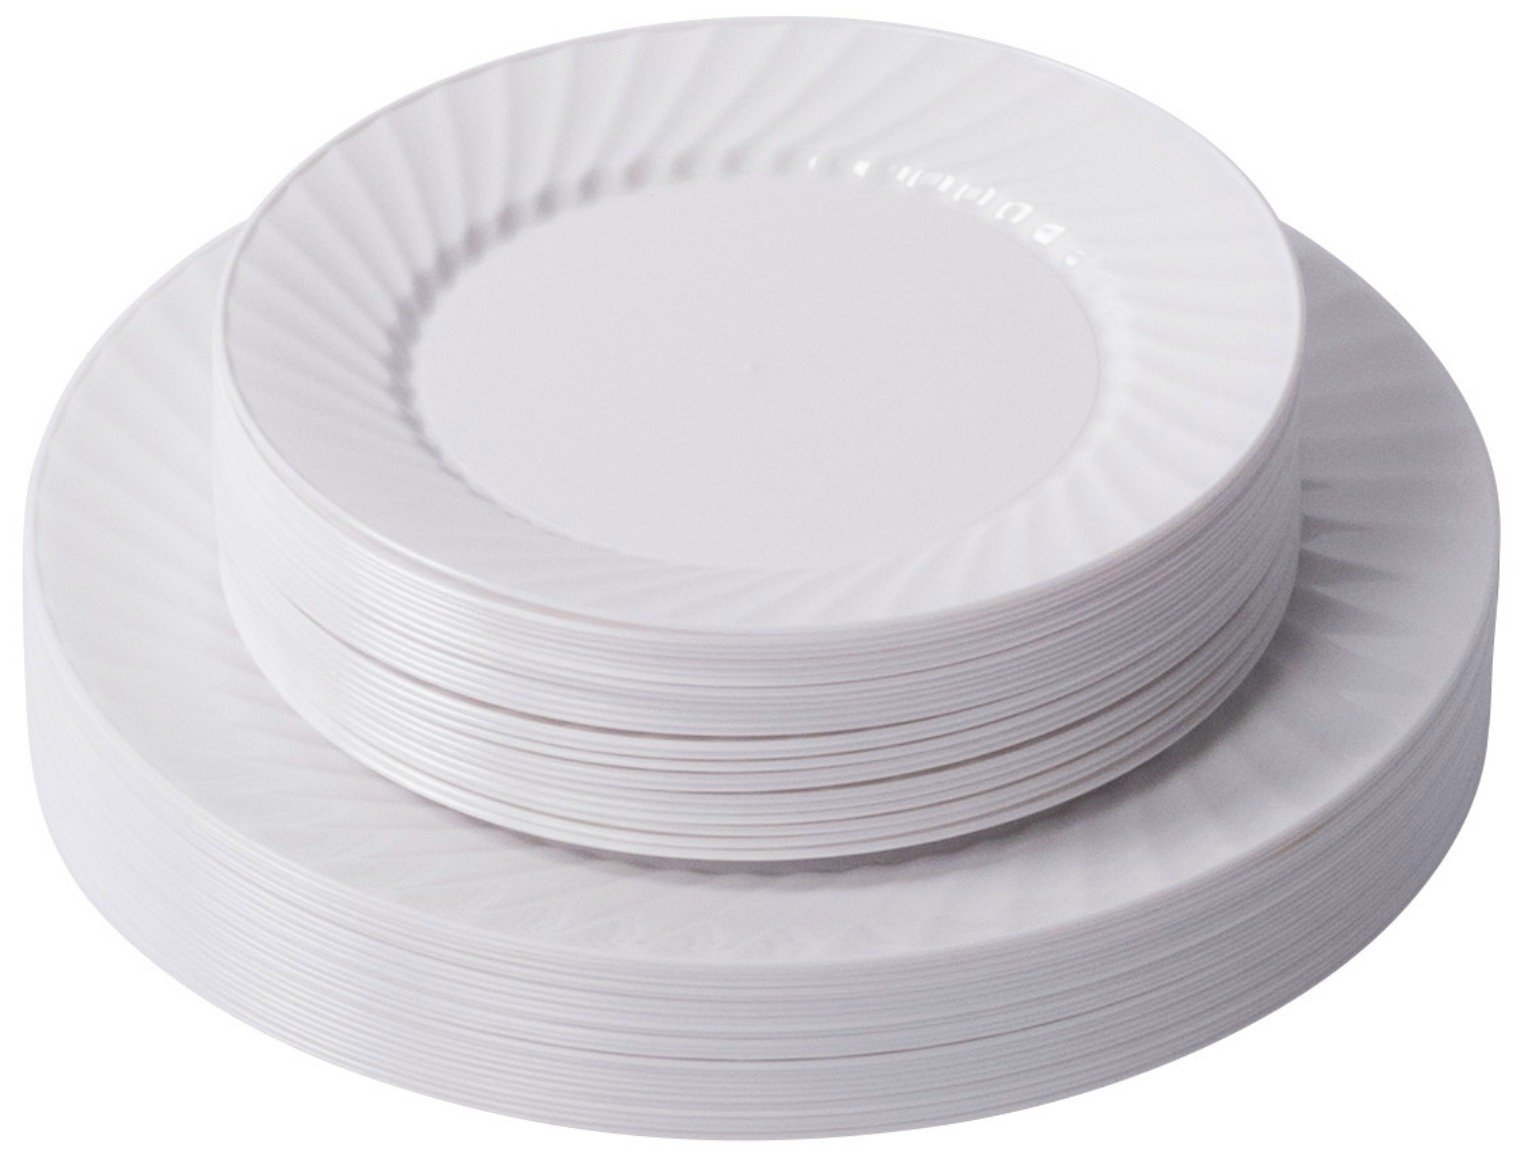 Zappy 50 Disposable Plastic Plates 25 White Dinner Plates (10.25\ ) and 25 Salad  sc 1 st  Amazon.com & Best Rated in Appetizer Plates \u0026 Helpful Customer Reviews - Amazon.com